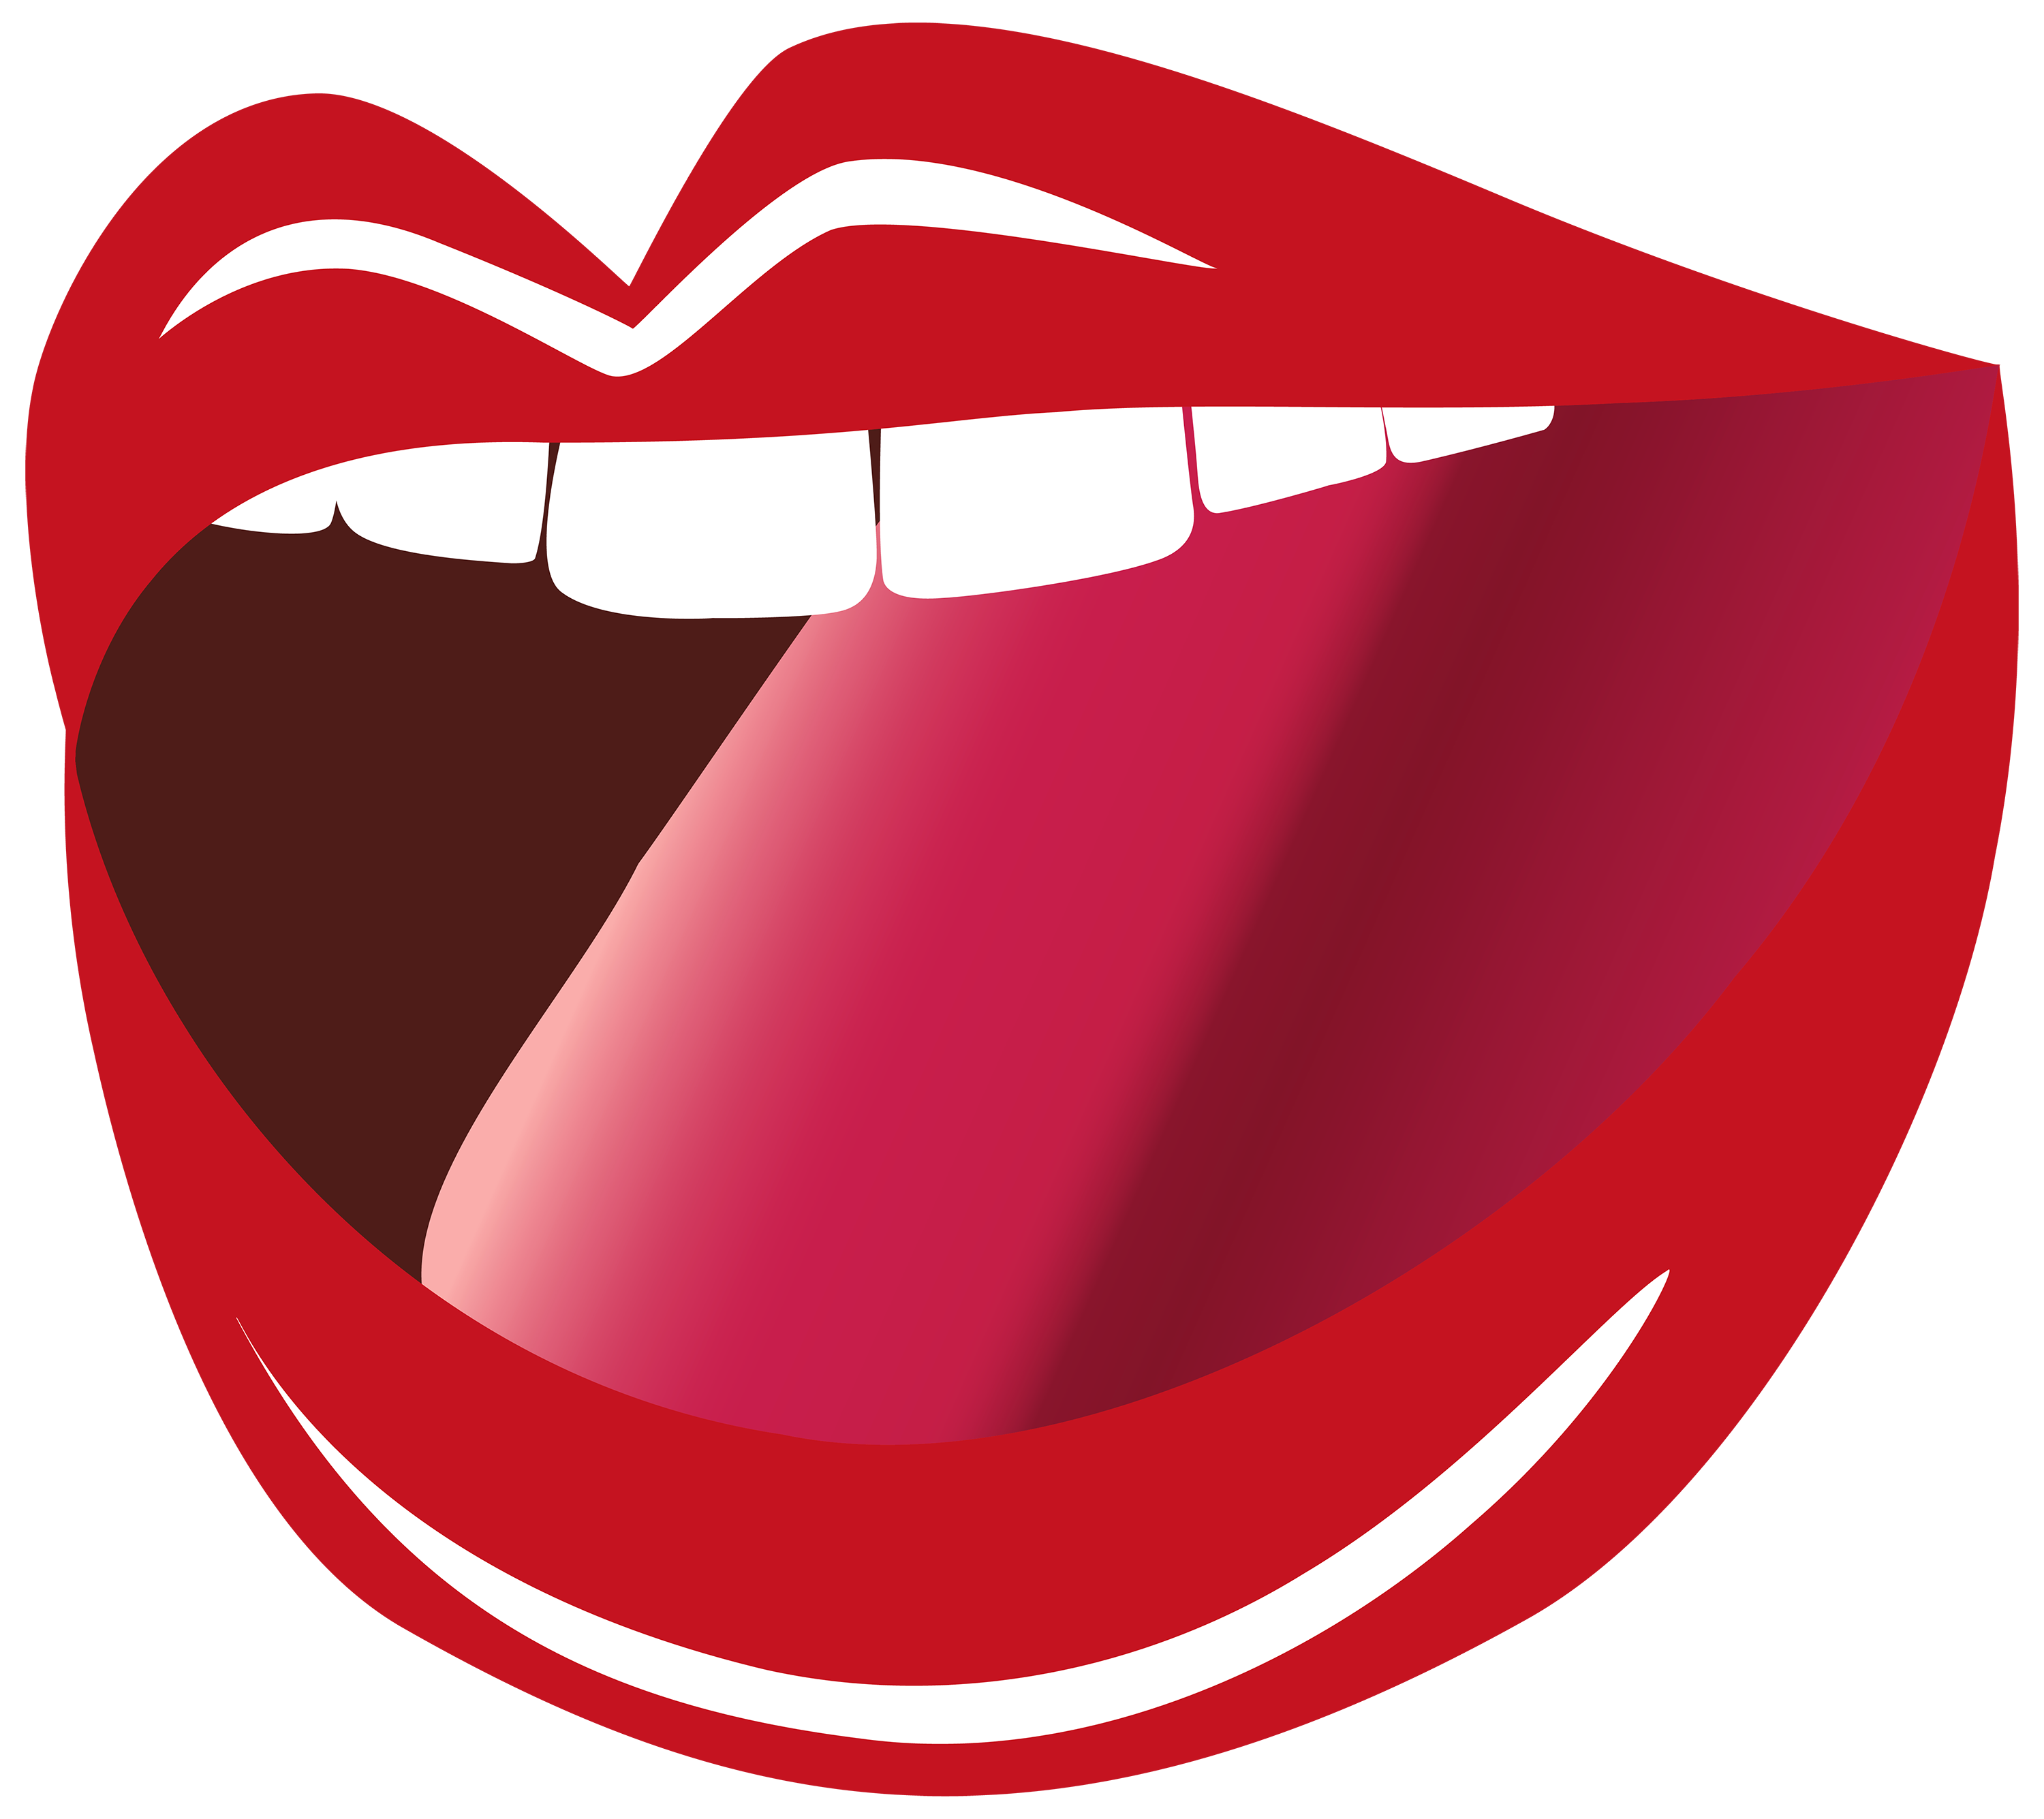 Clipart showing profile view of mouth speaking vector freeuse library Talking Mouth Cliparts | Free download best Talking Mouth Cliparts ... vector freeuse library